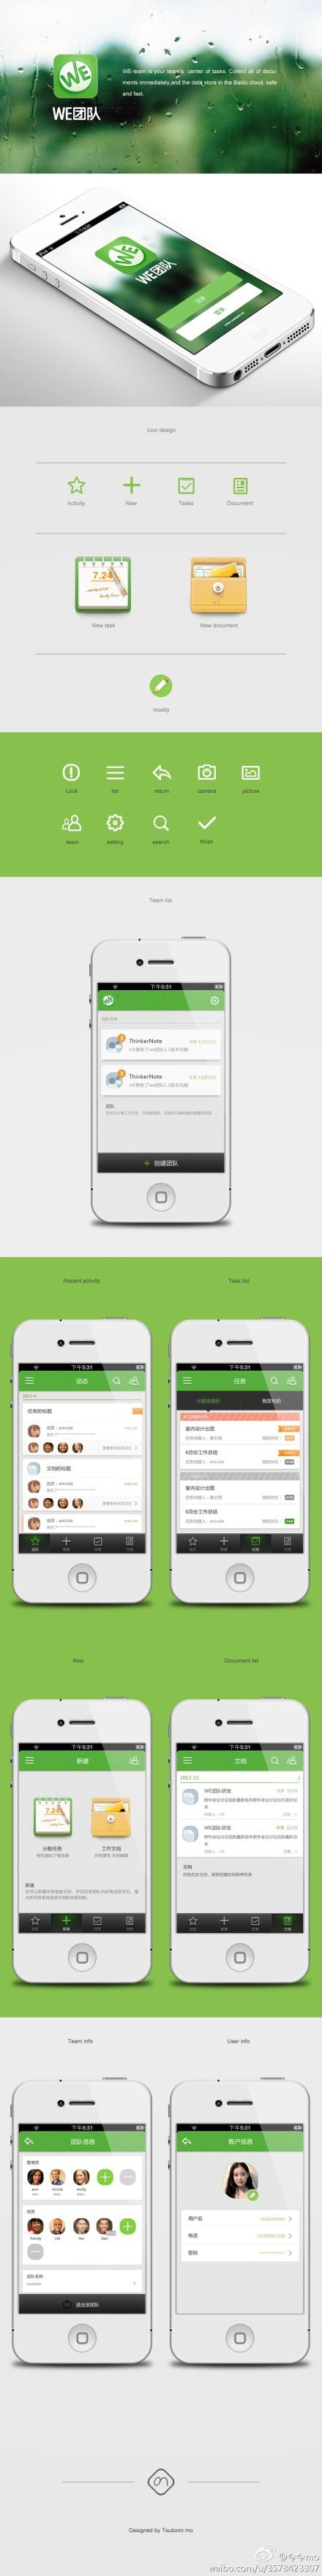 WE #UserInterface #UI #Design #Mobile #App